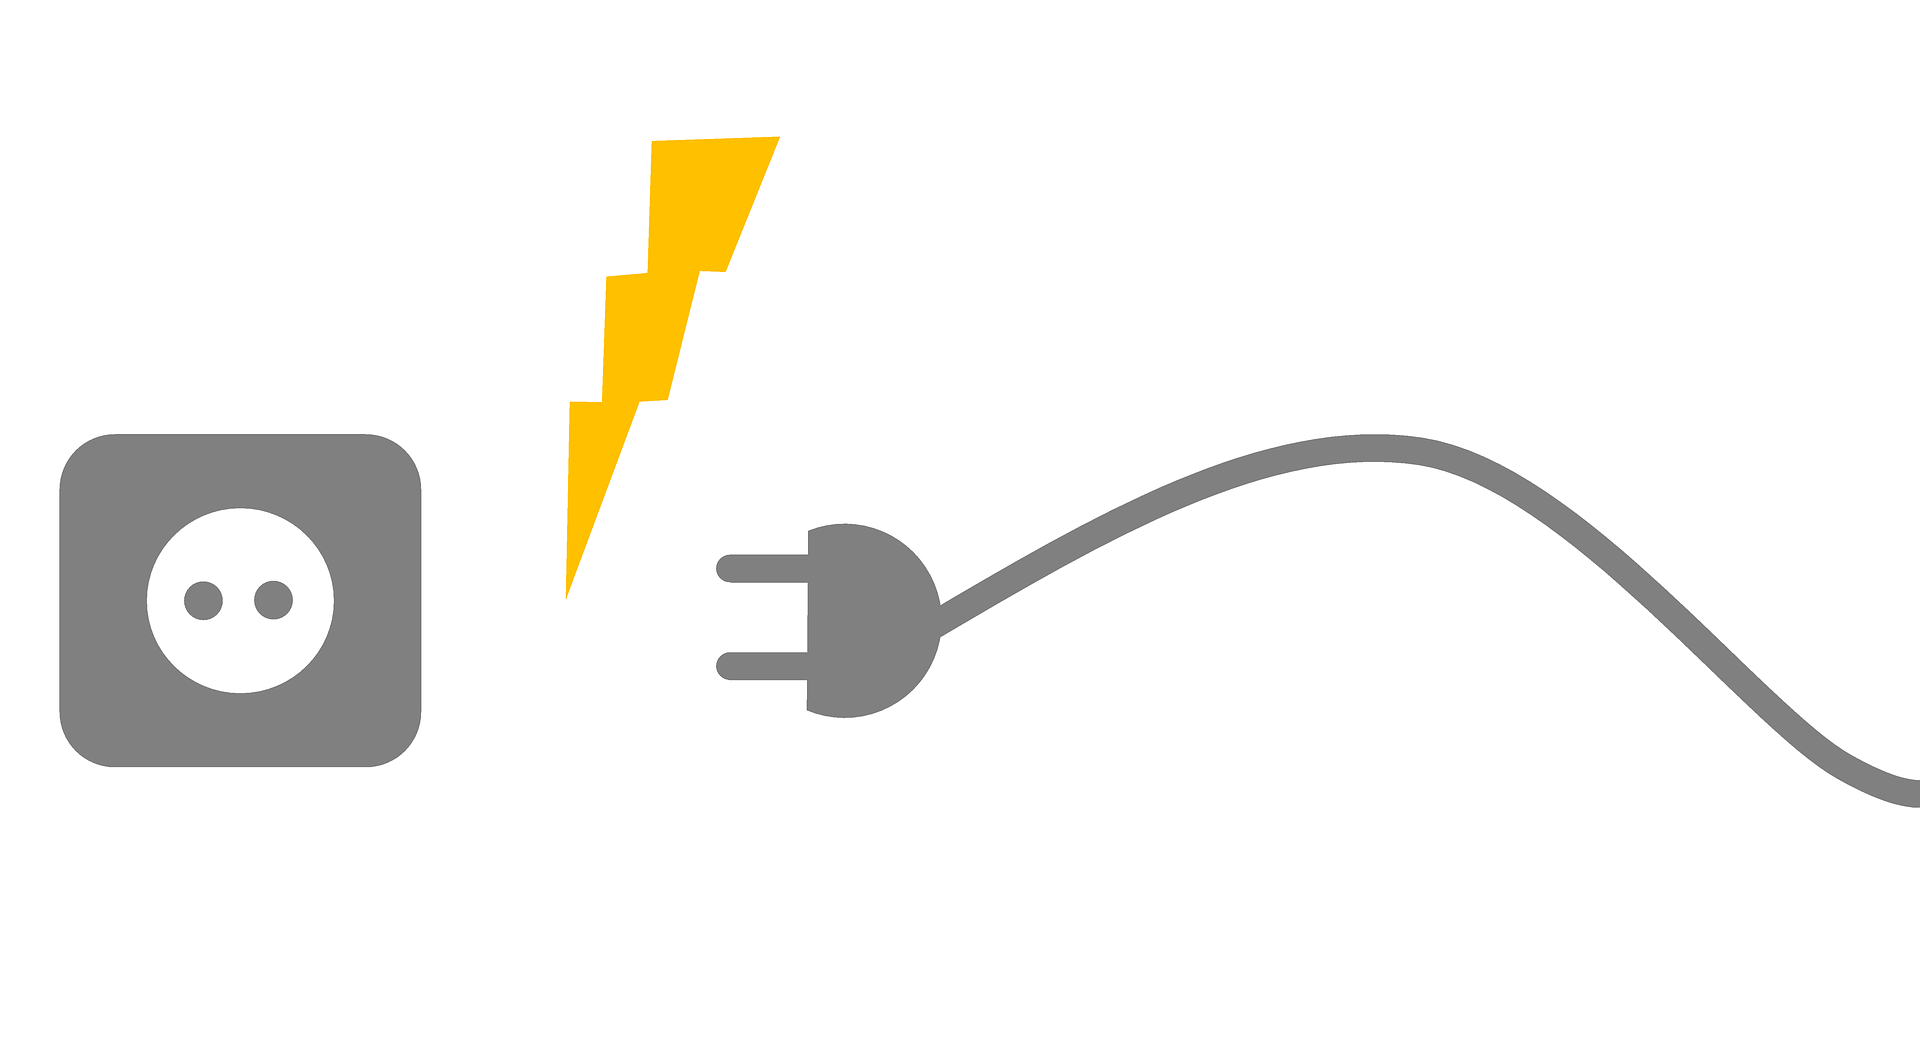 electricity-1968982_1920.png